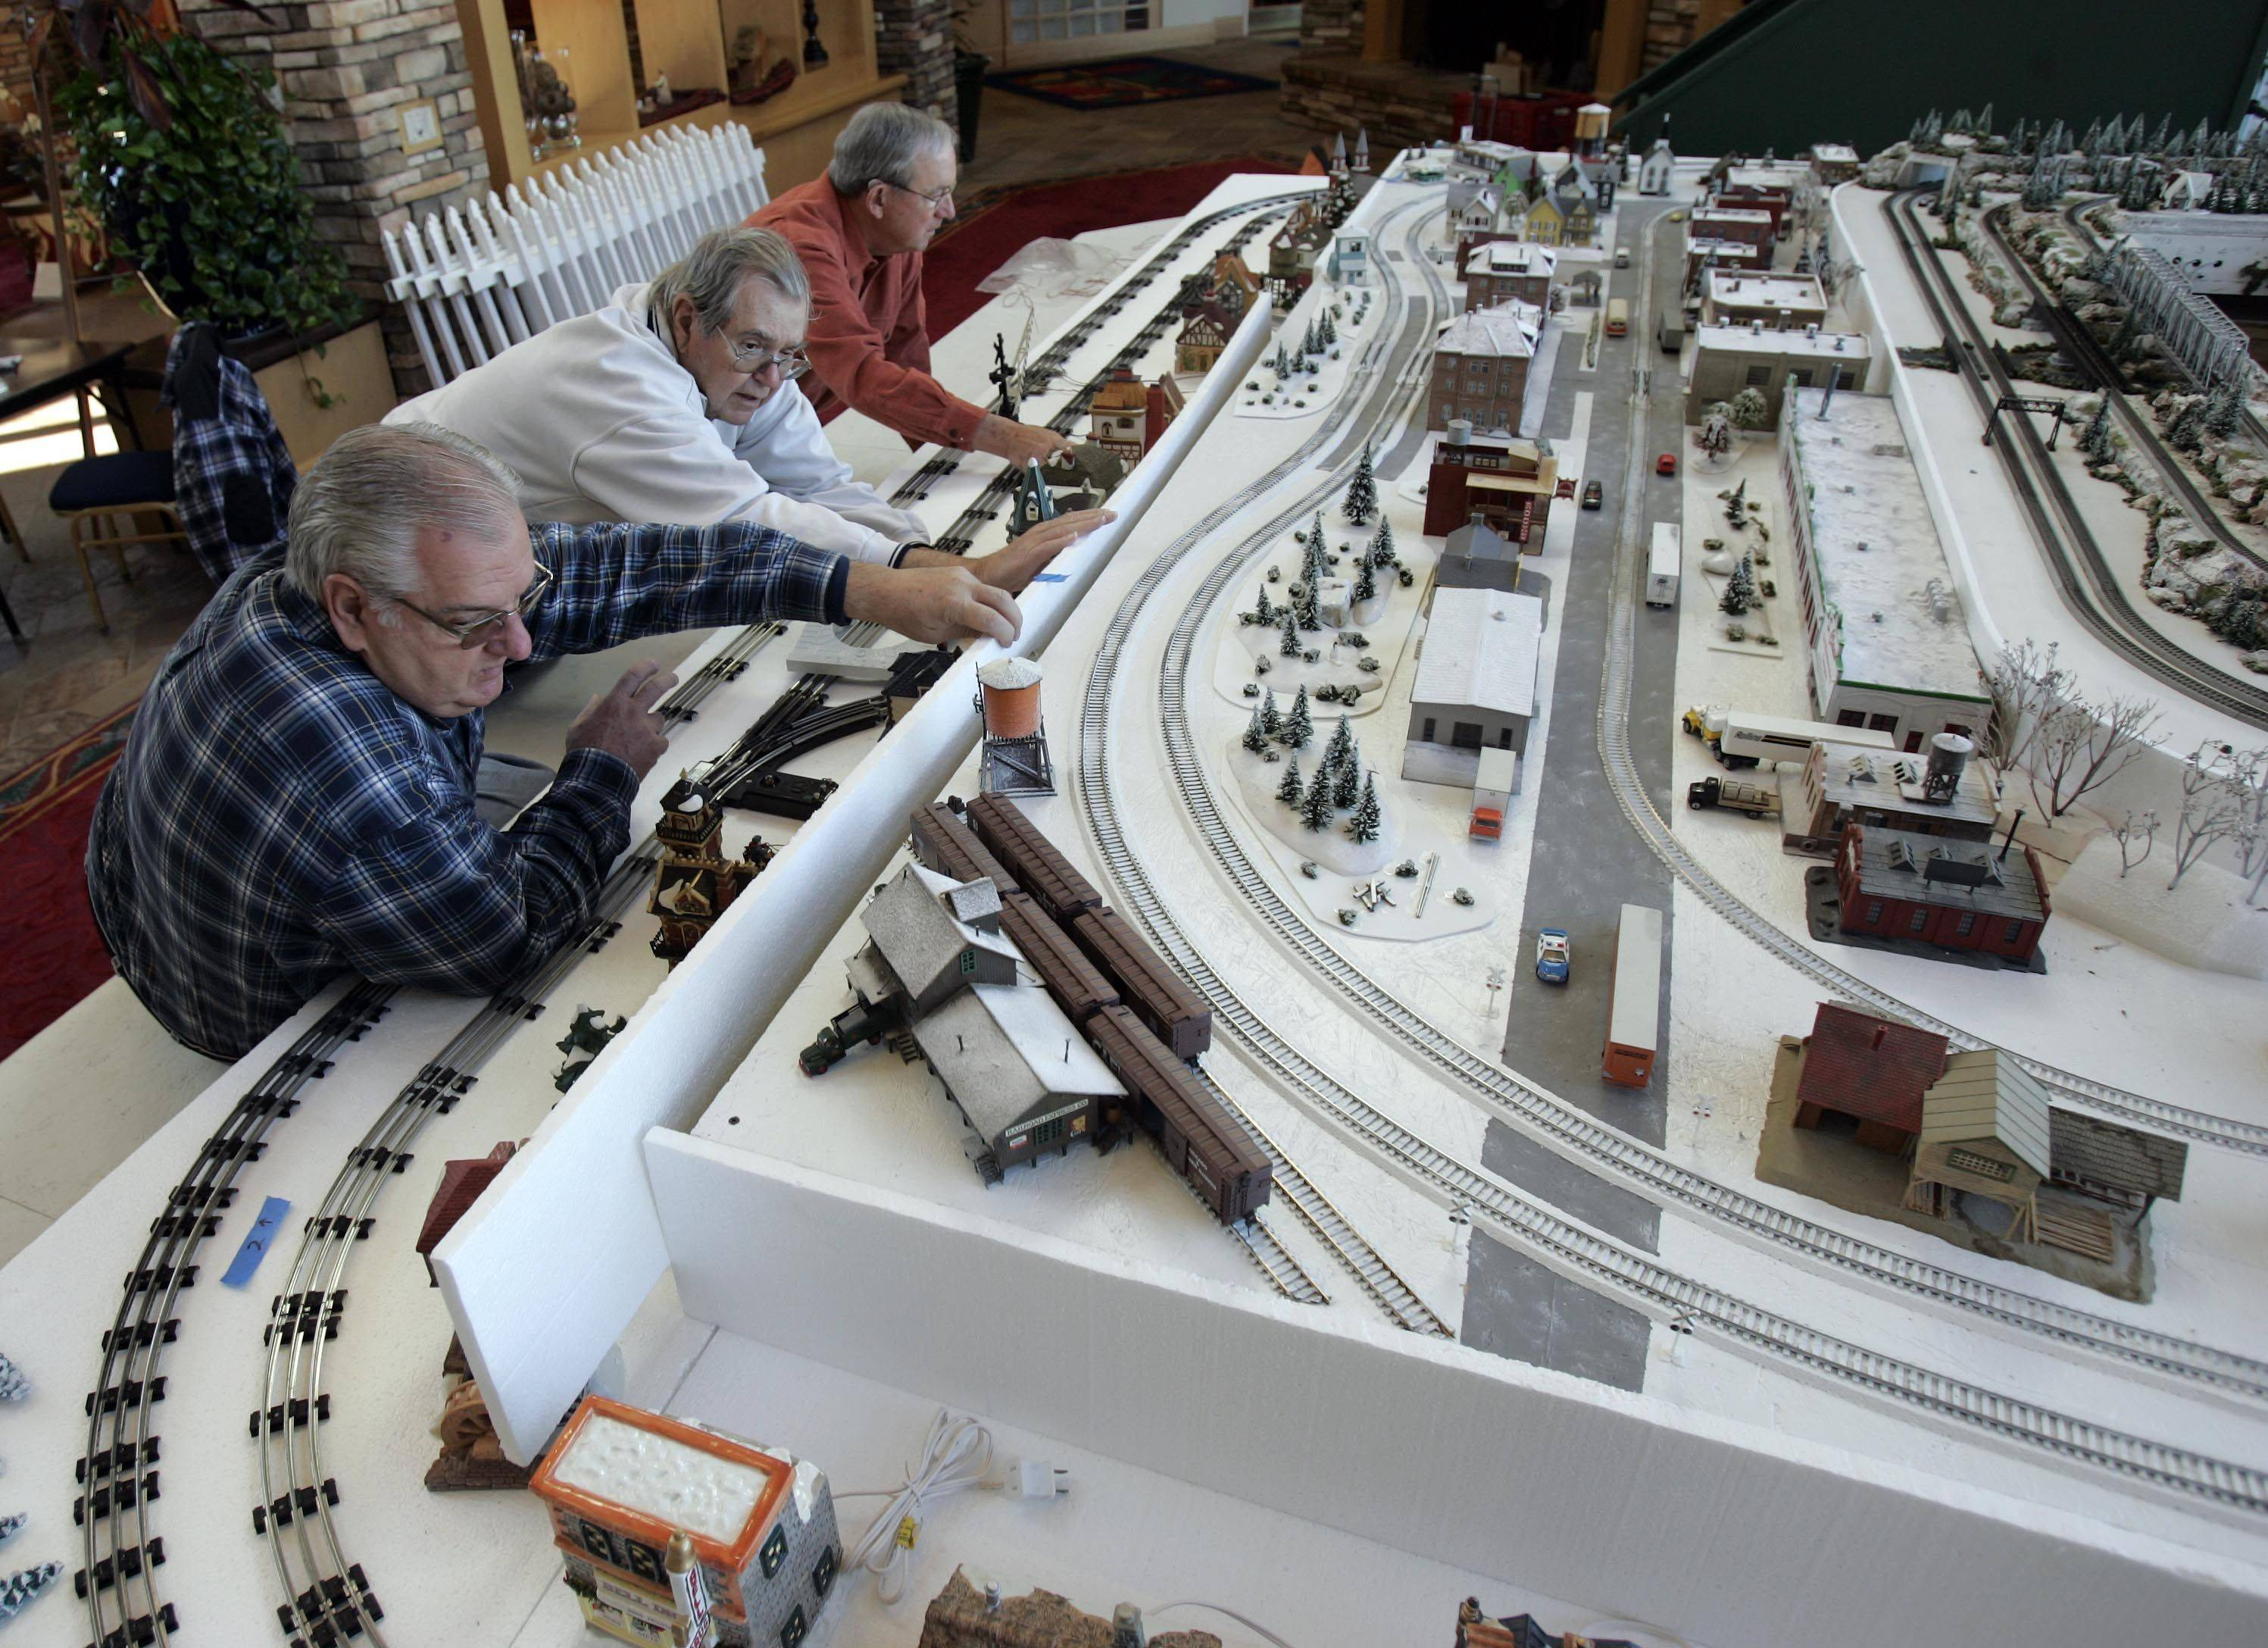 Sun City residents Paul Strokosch, from left, Ed Kopp, and Pete Walton work to set up the trains Tuesday, November 23, 2010.